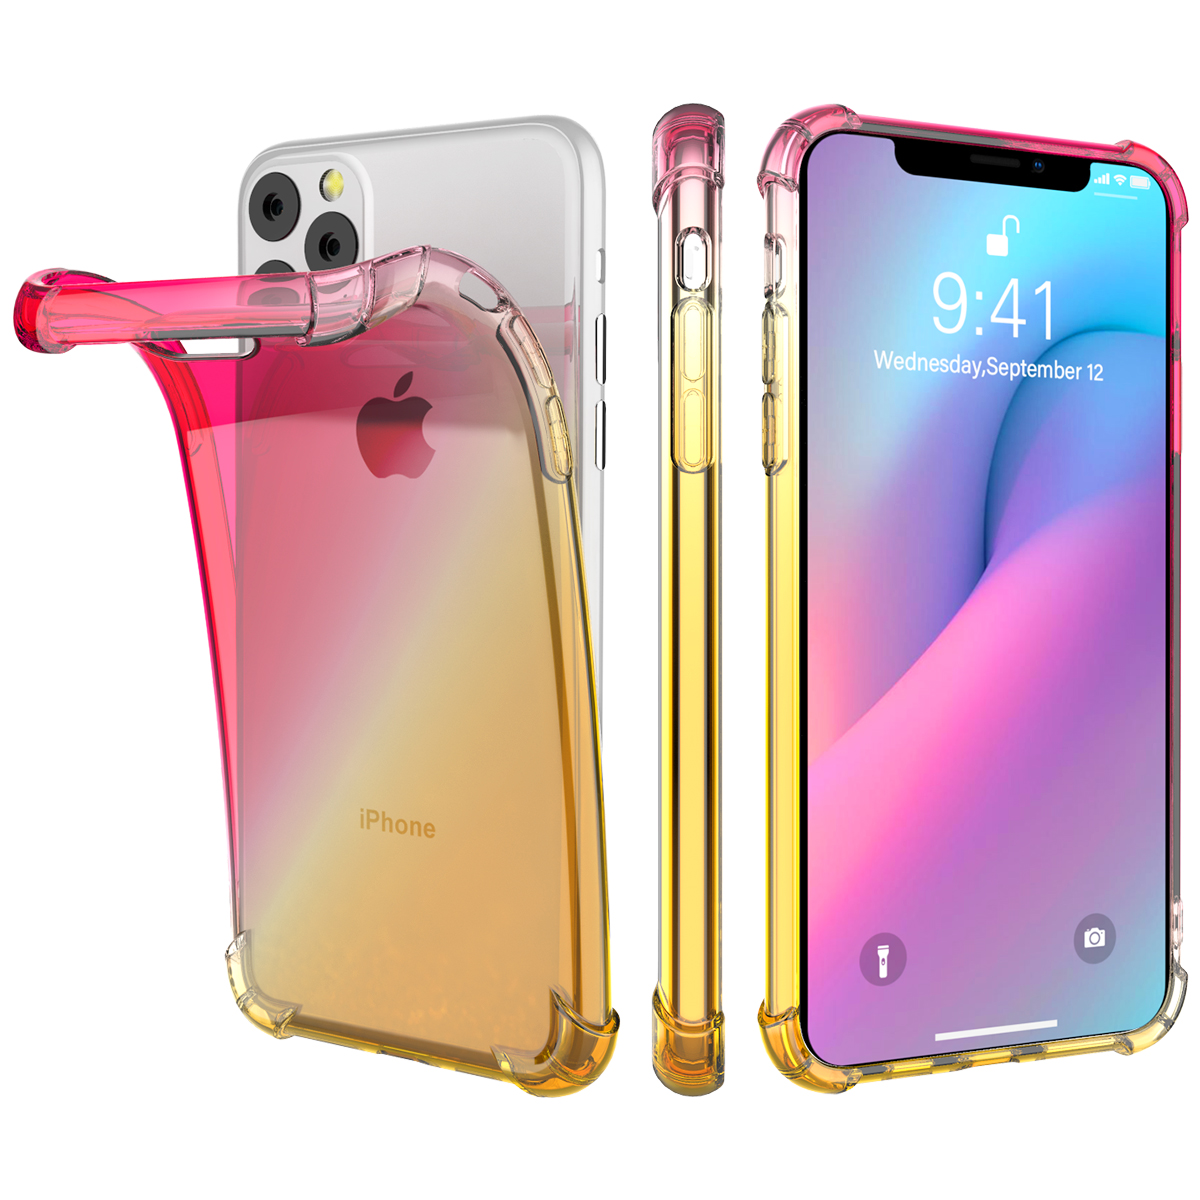 Gradient Soft TPU Case for iPhone 11/11 Pro/11 Pro Max 2